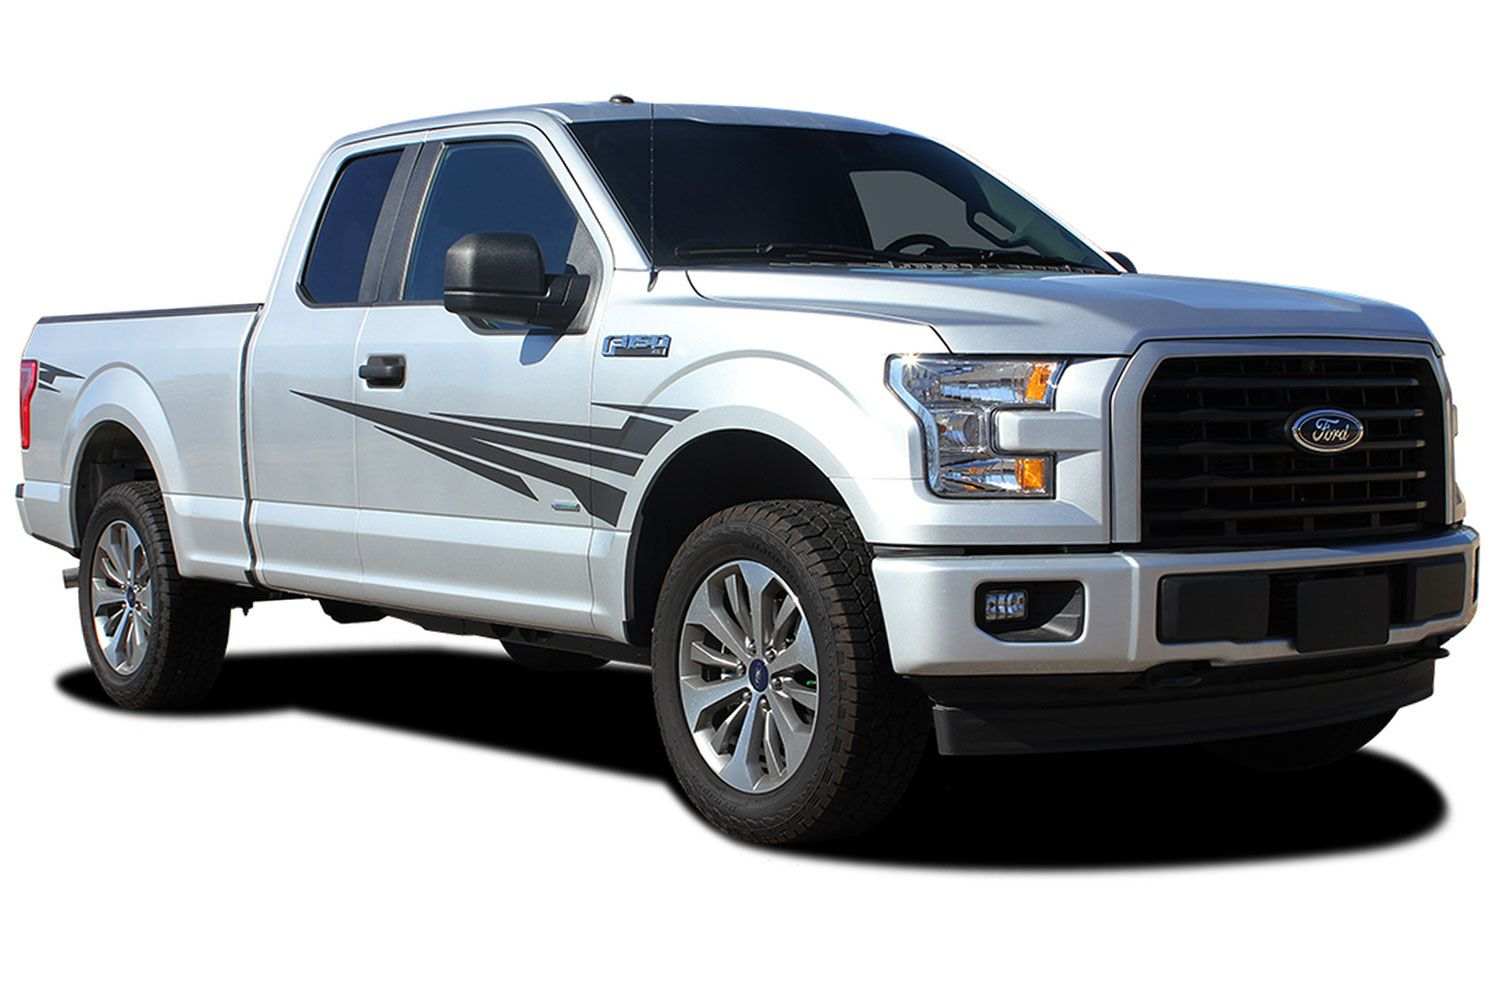 2017 2016 2018 2019 Ford F 150 Apollo One Color Decal Fender To Side Door Panel Vinyl Graphics Stripes Kit